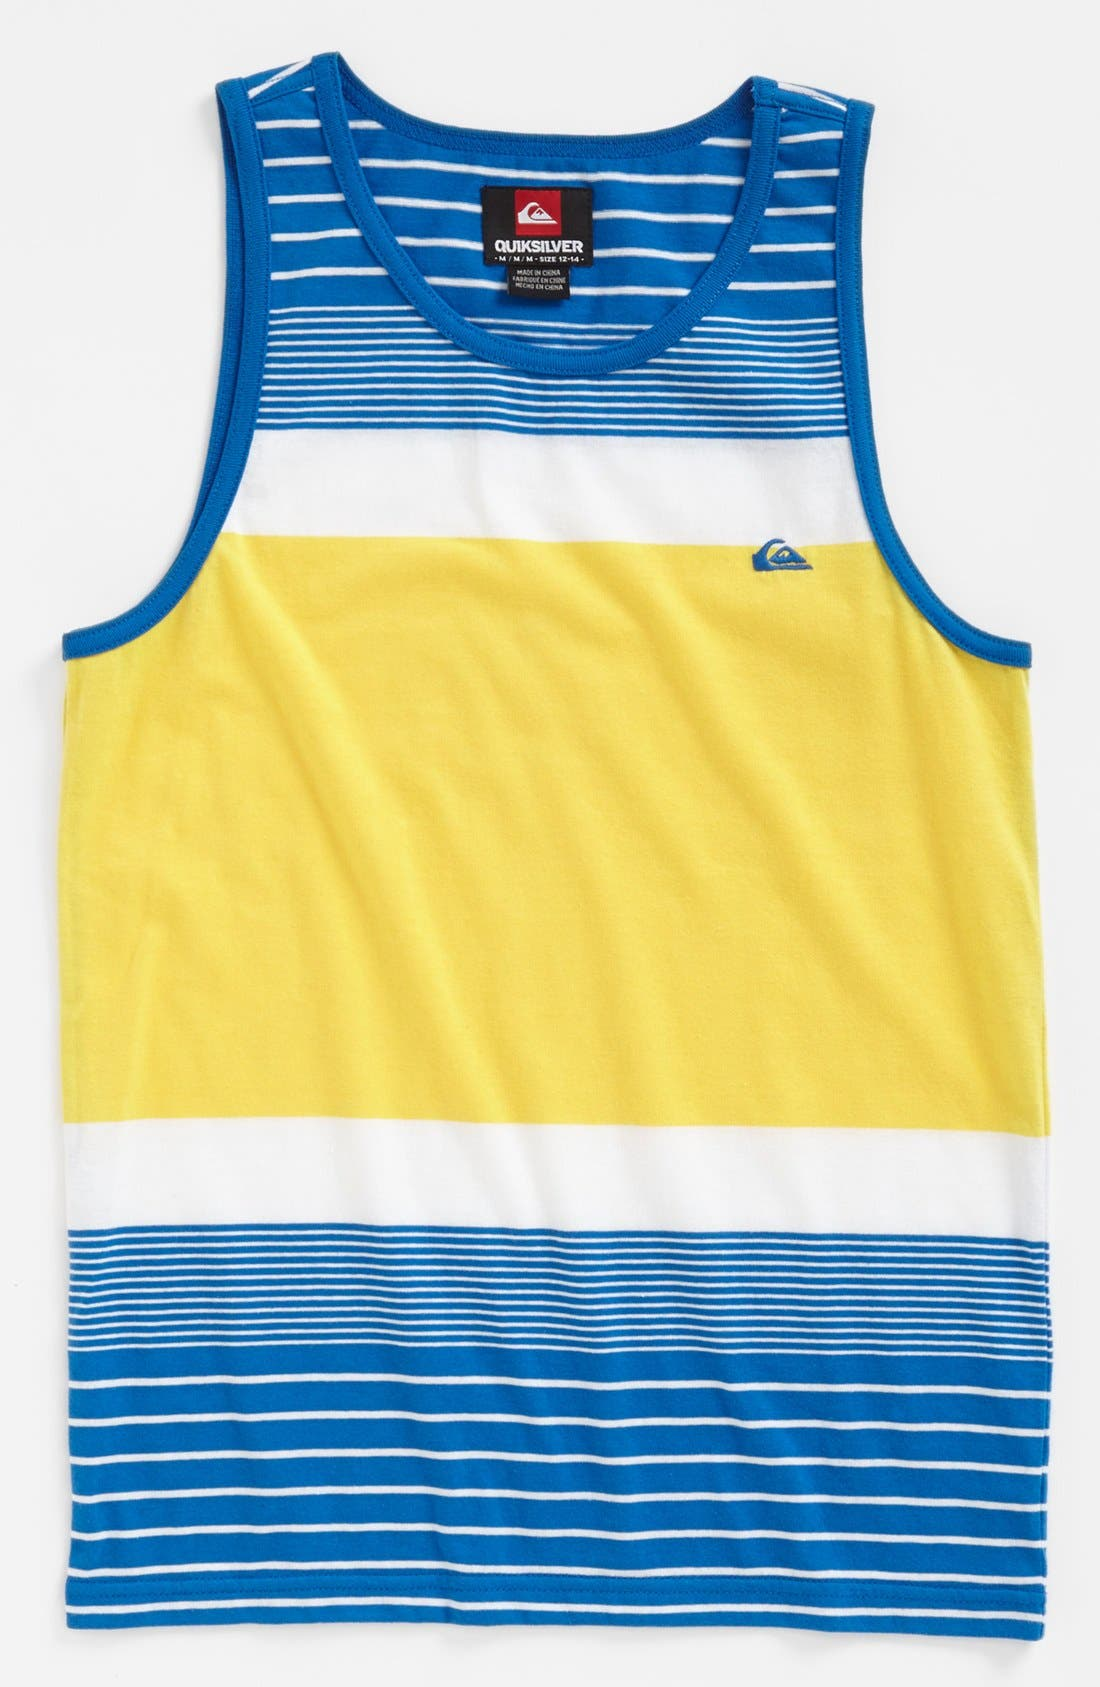 Alternate Image 1 Selected - Quiksilver 'Crush Groove' Tank (Little Boys)